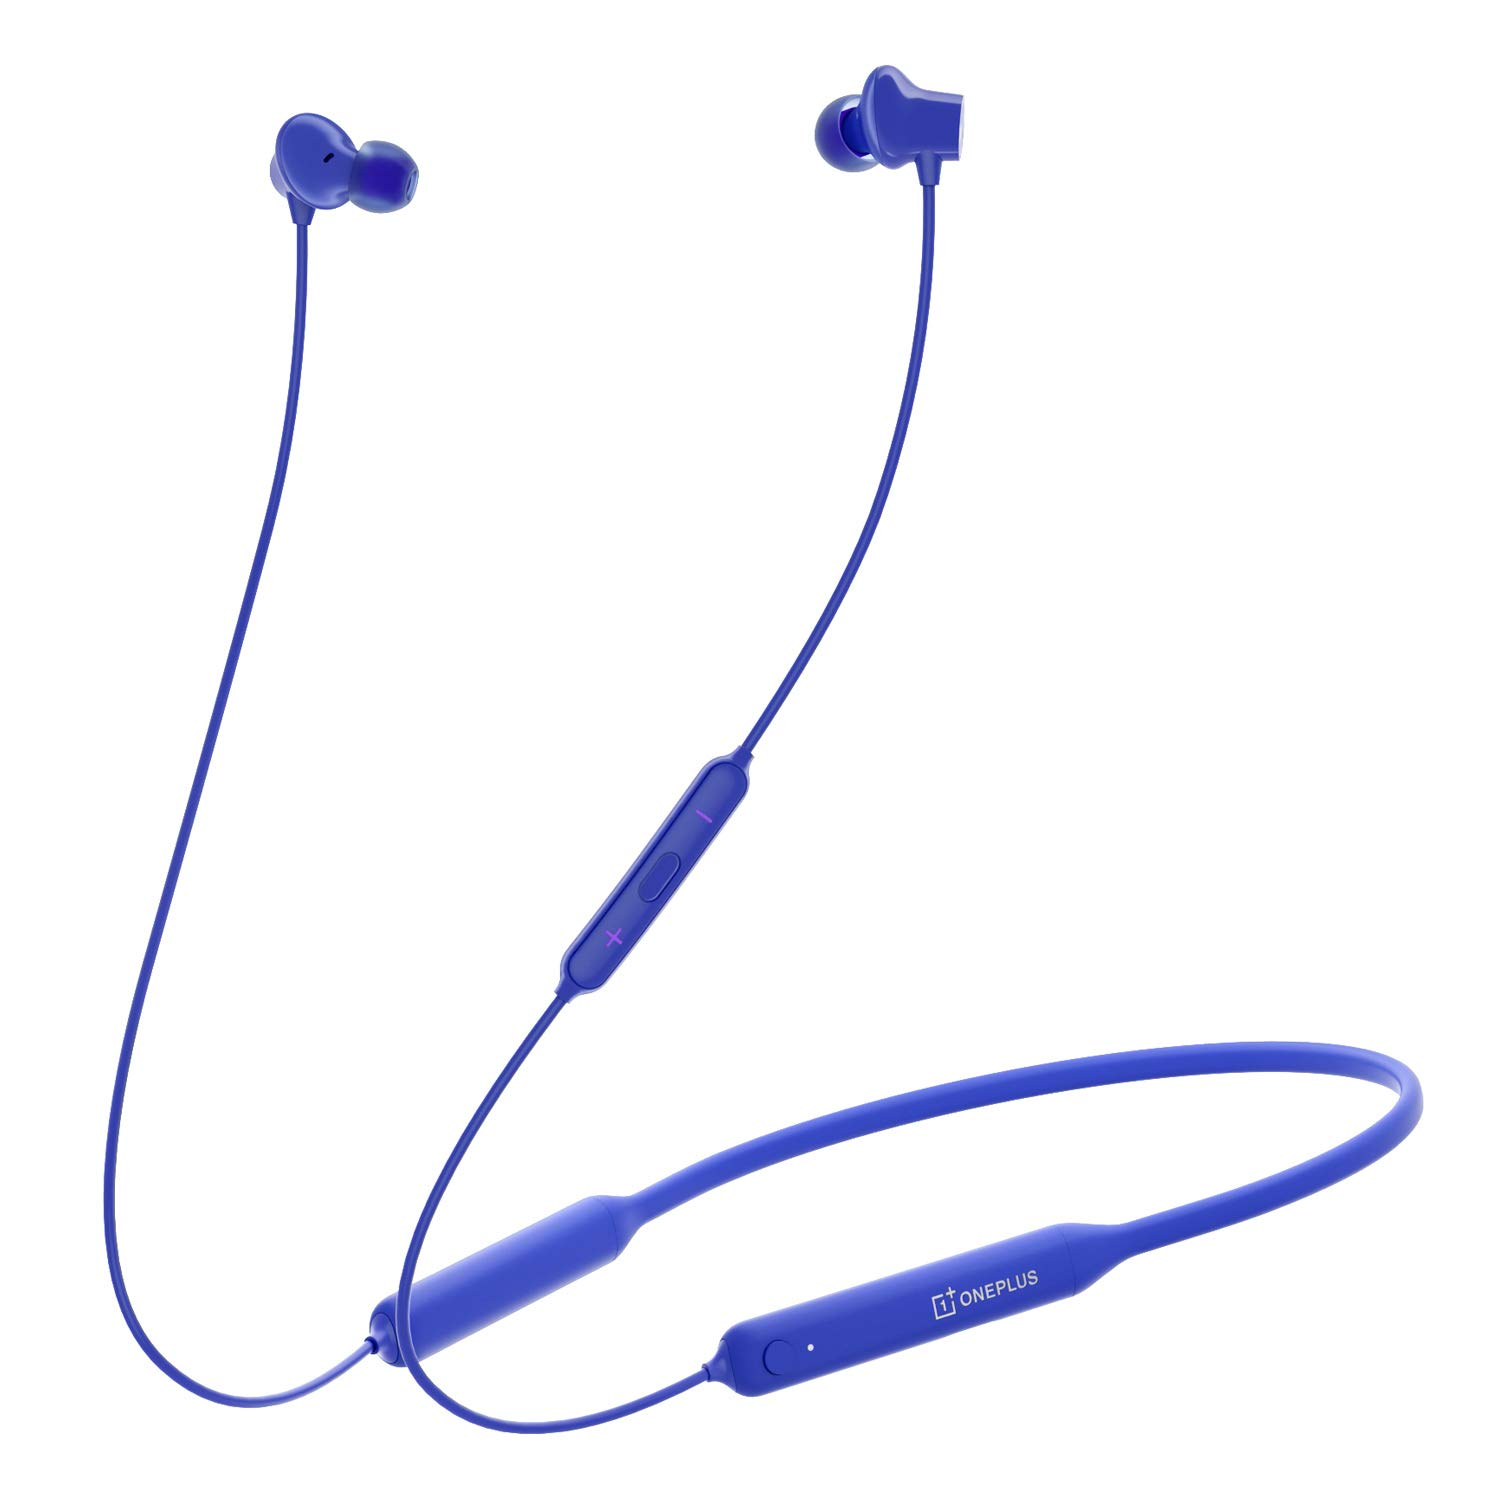 which brand is best for bluetooth earphones